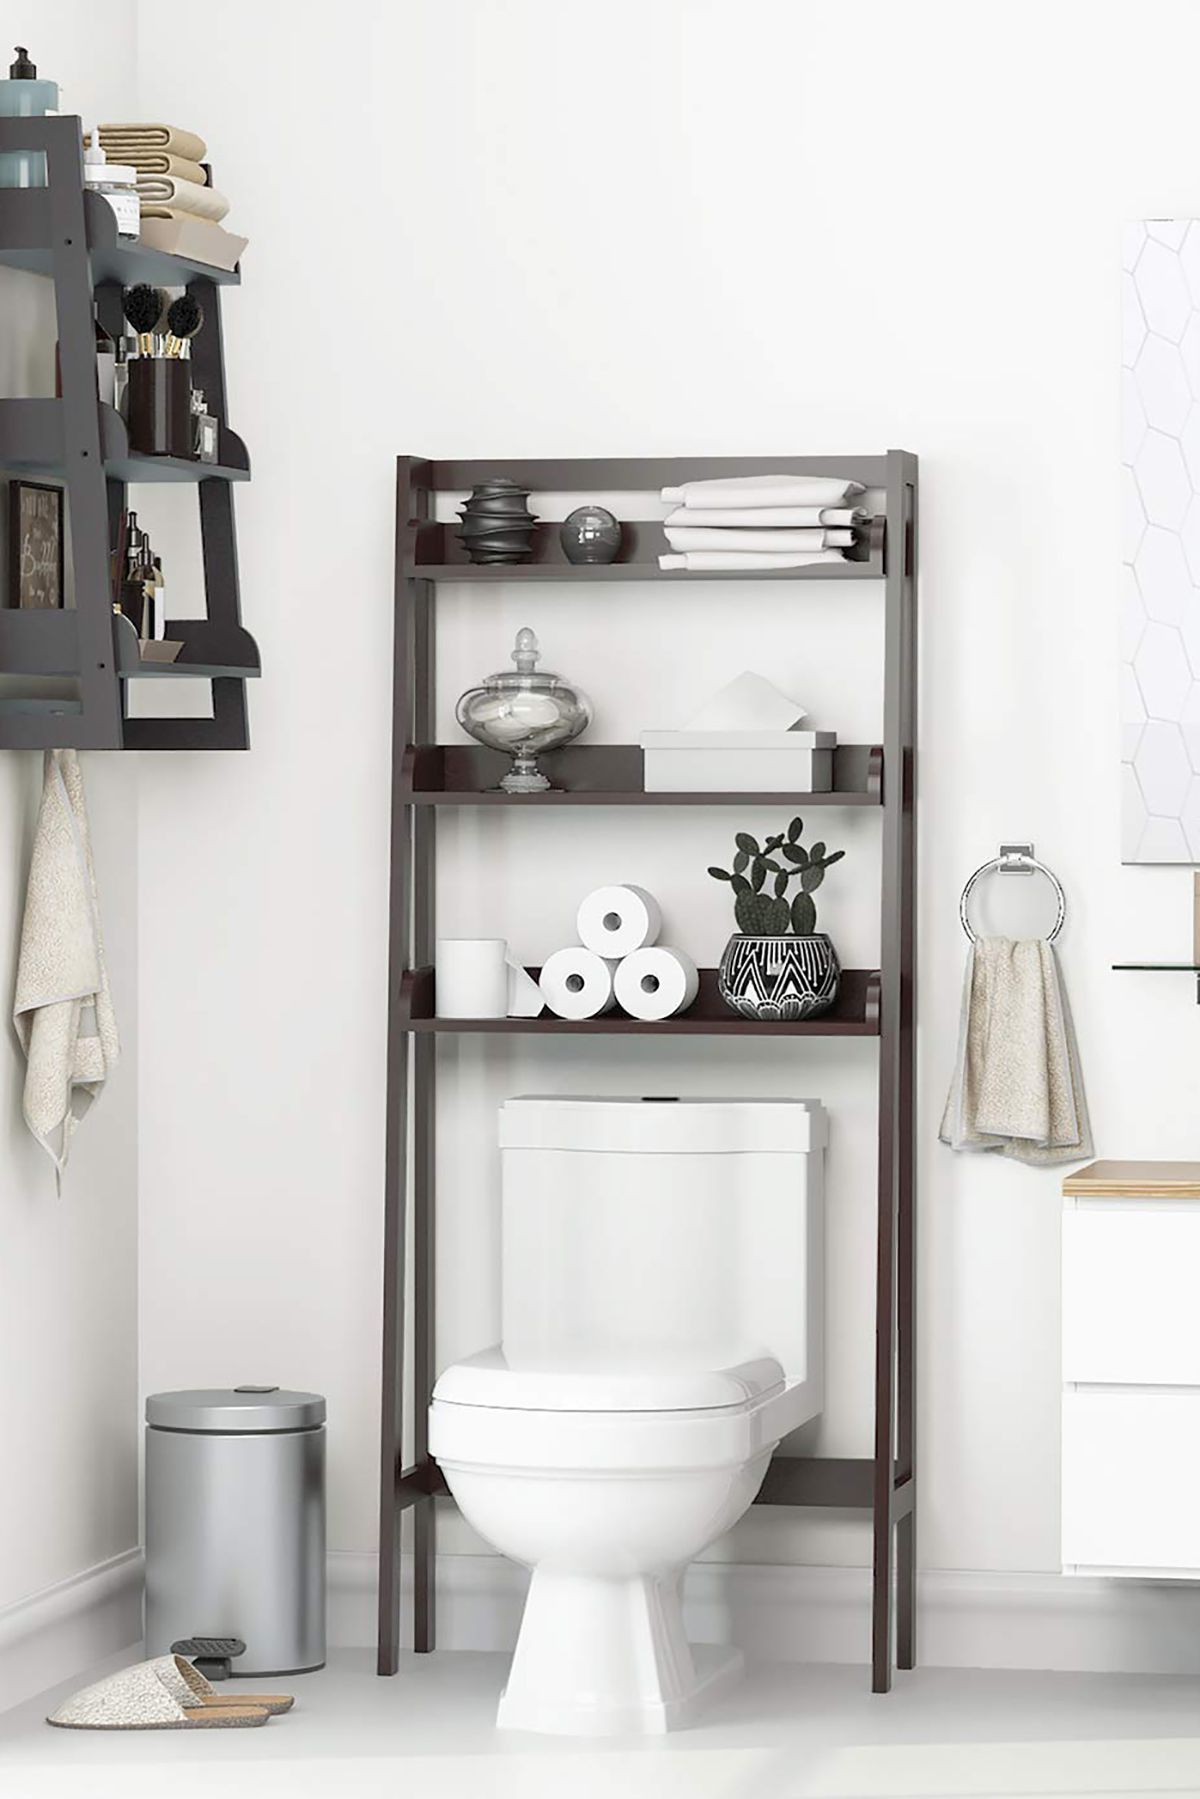 Over-the-Toilet Shelves